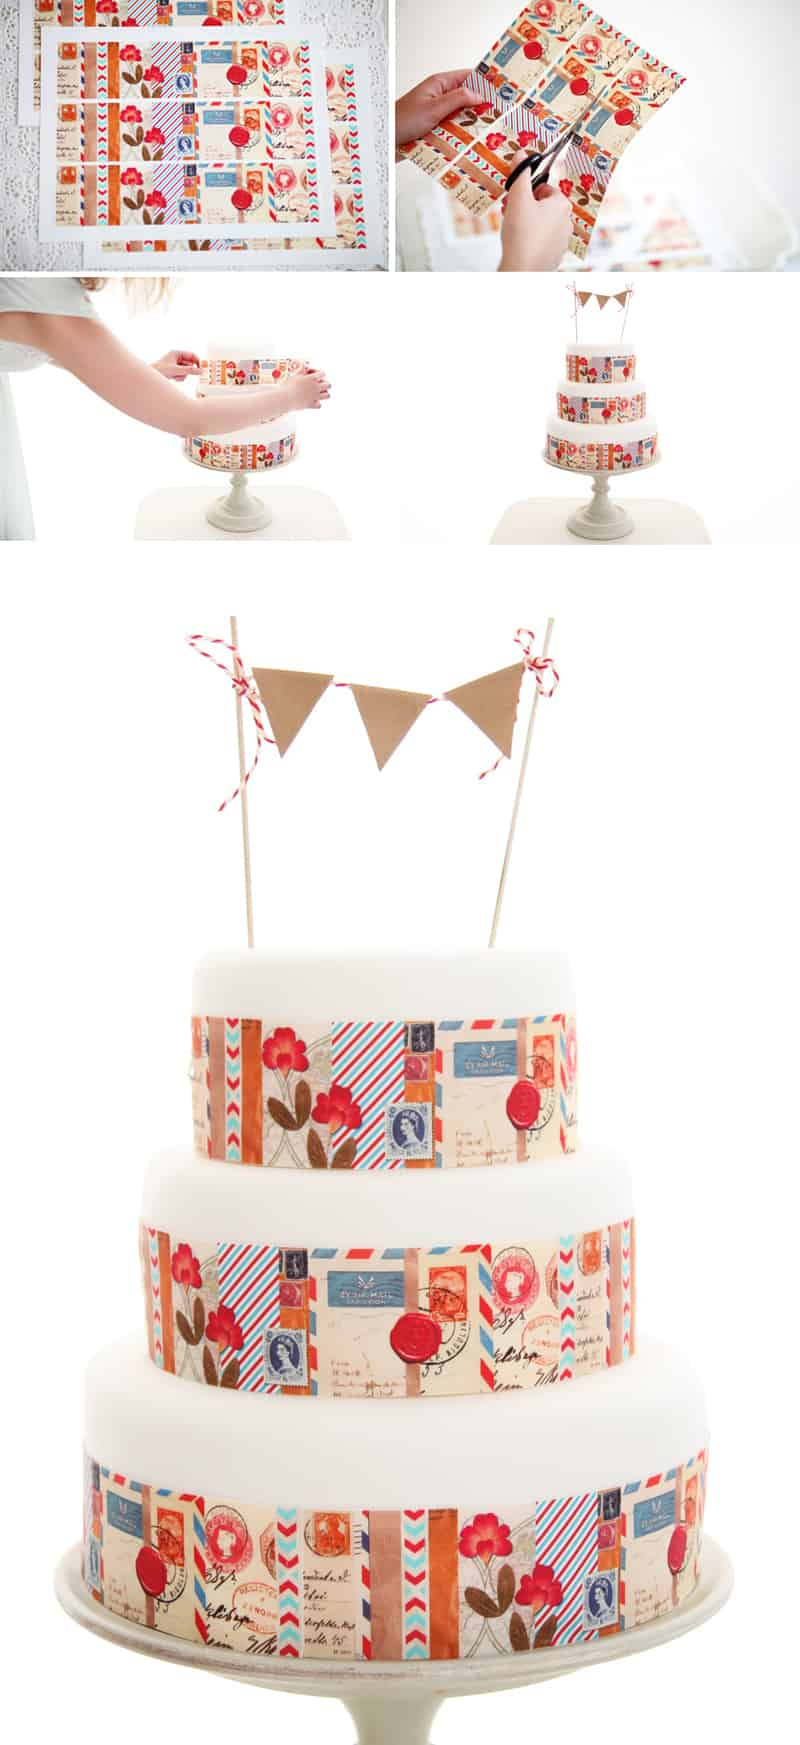 picture relating to Printable Cake Paper named Do it yourself Totally free Printable Edible Icing Paper! Cake style recommendations